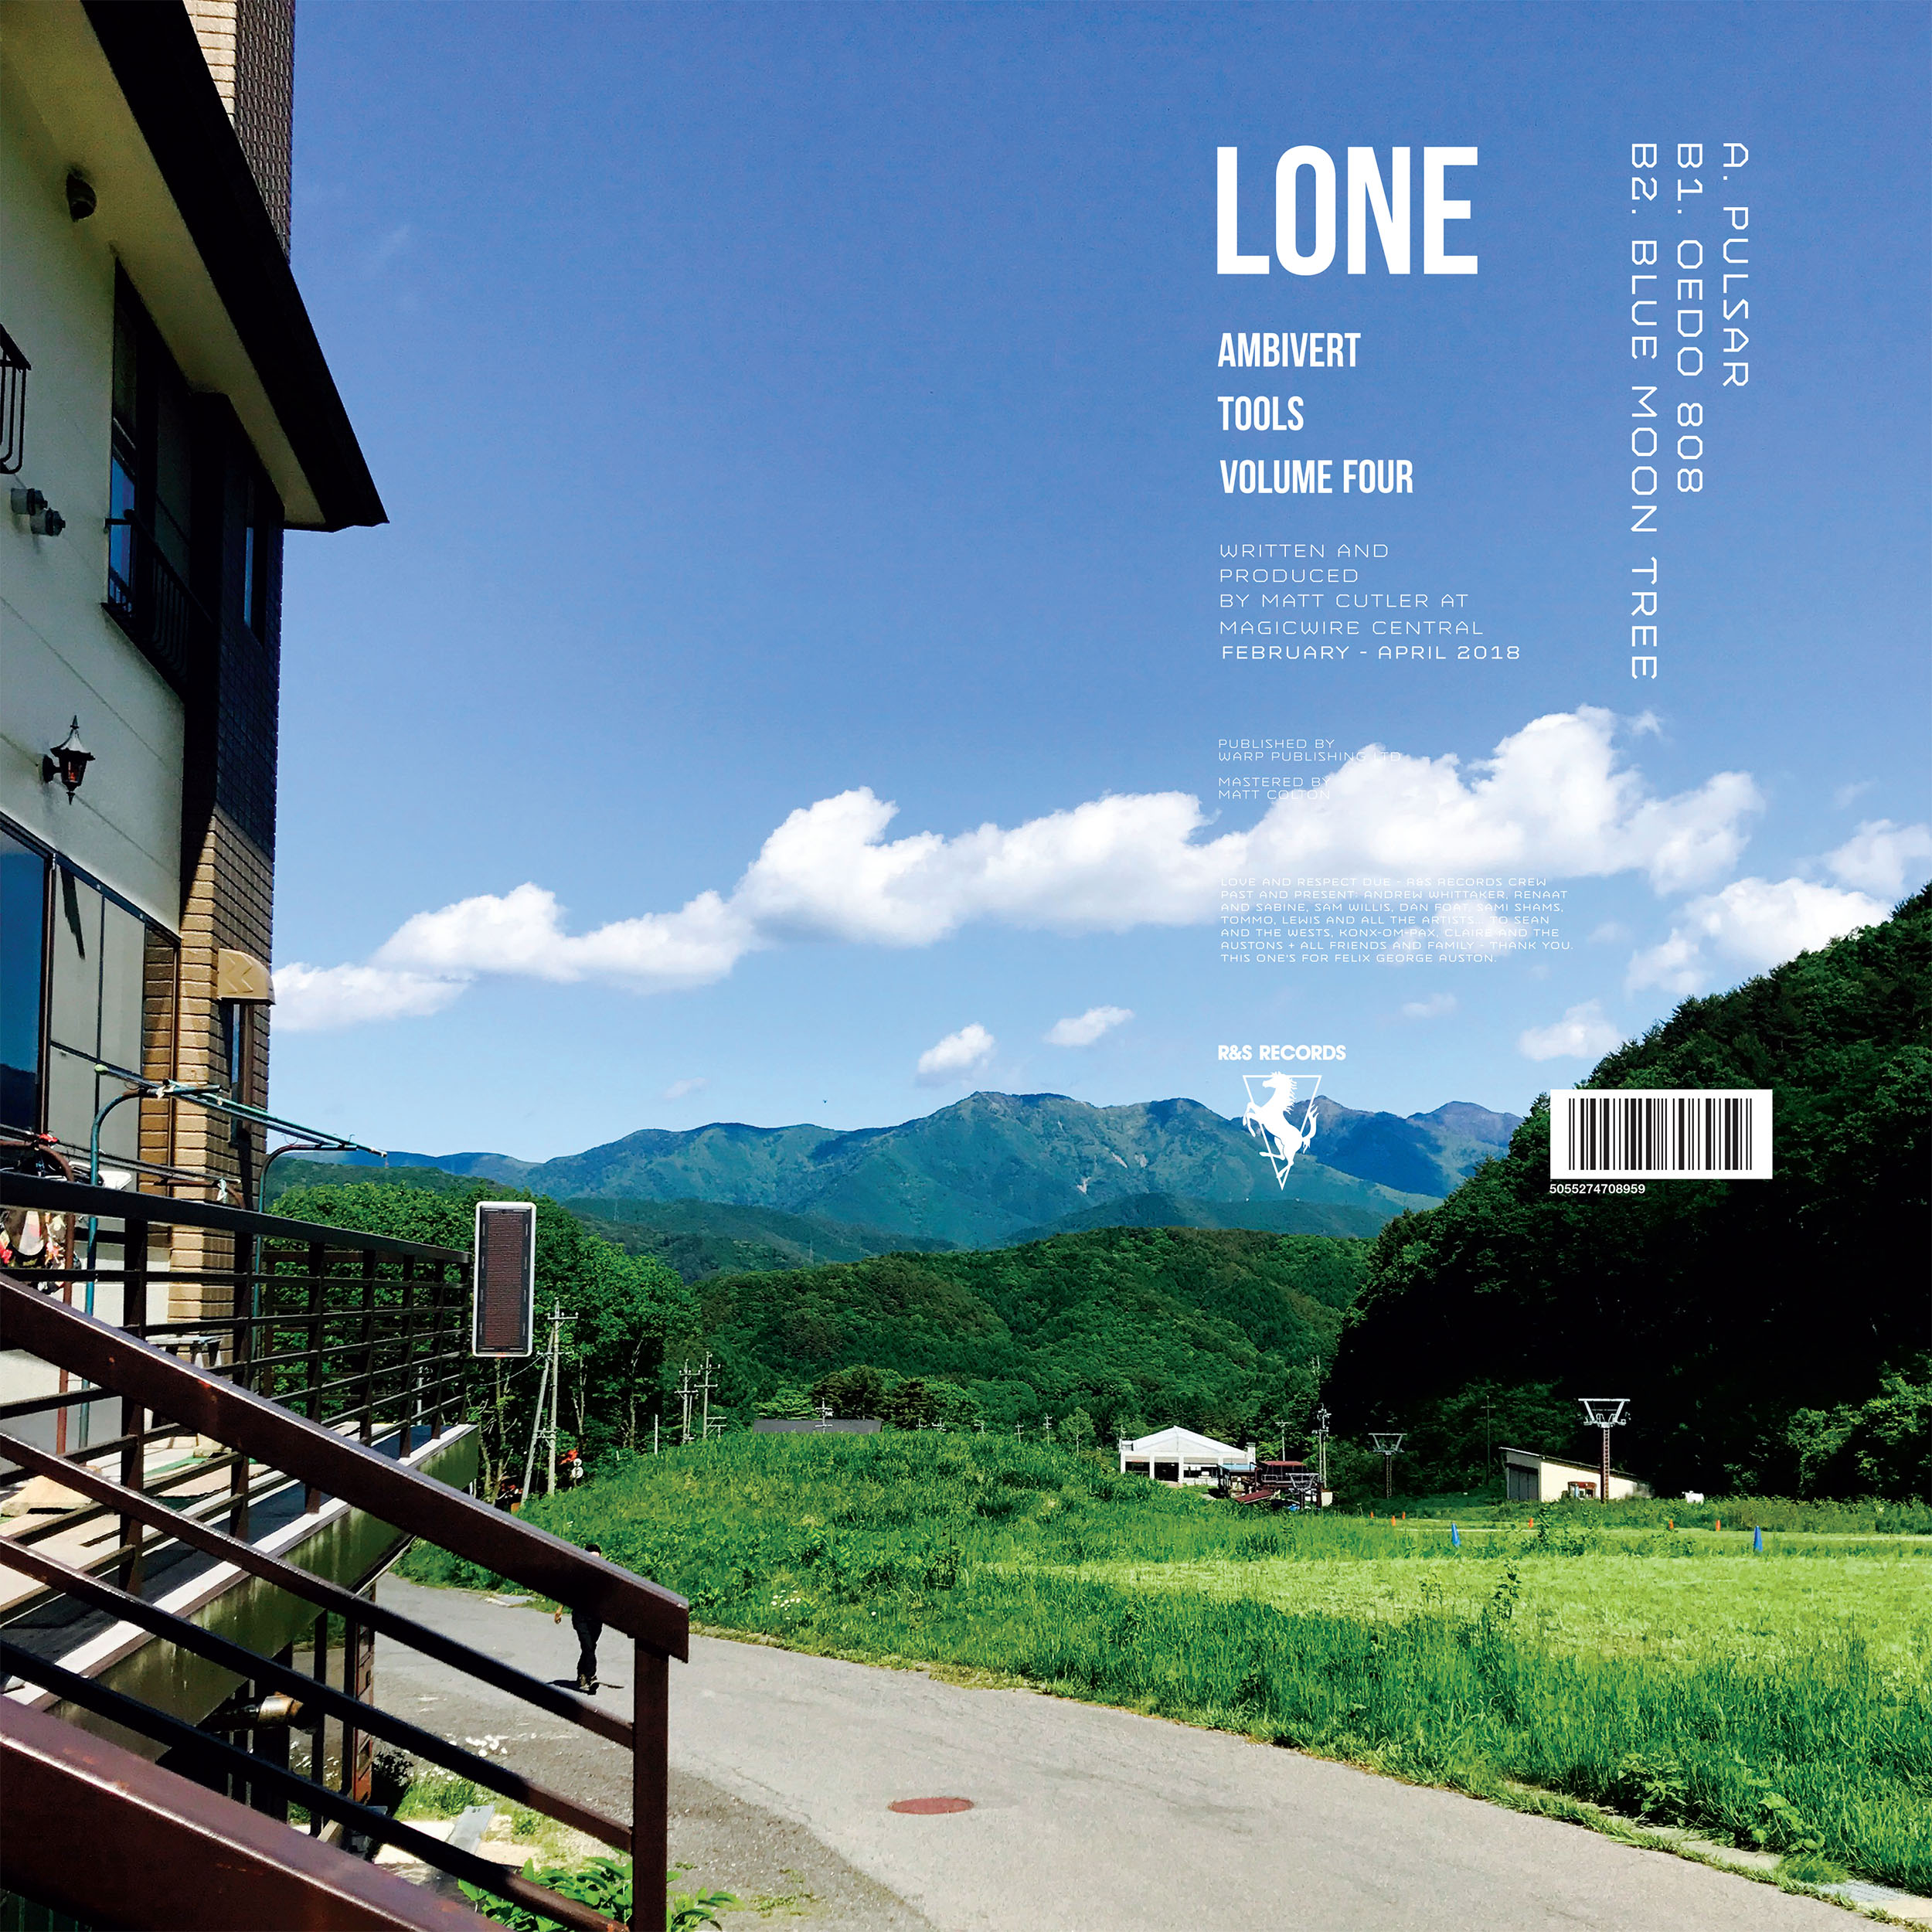 Lone/AMBIVERT TOOLS VOLUME FOUR 12""